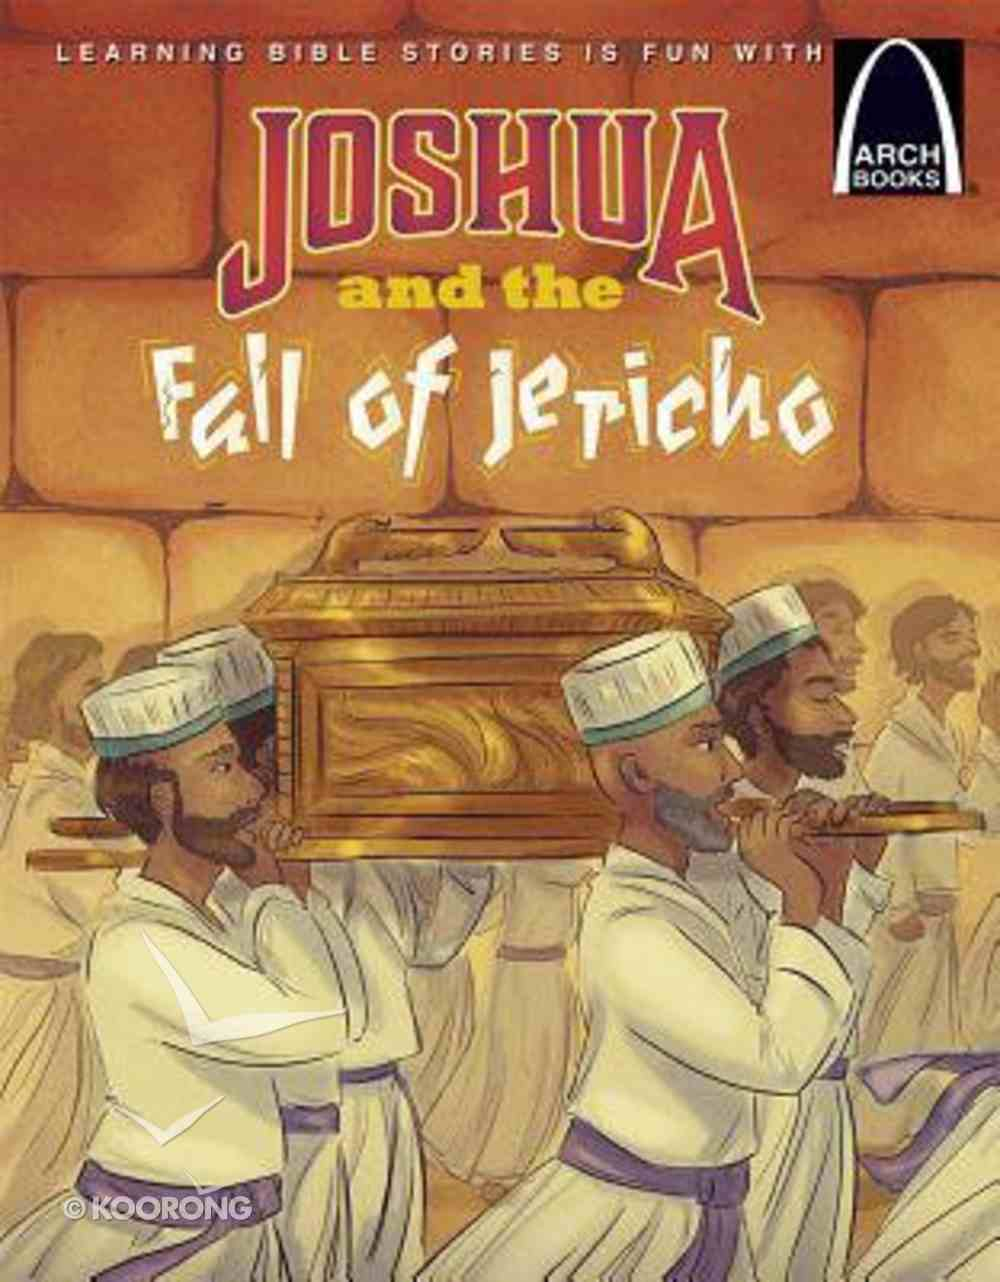 Joshua and the Fall of Jericho (Arch Books Series) Paperback